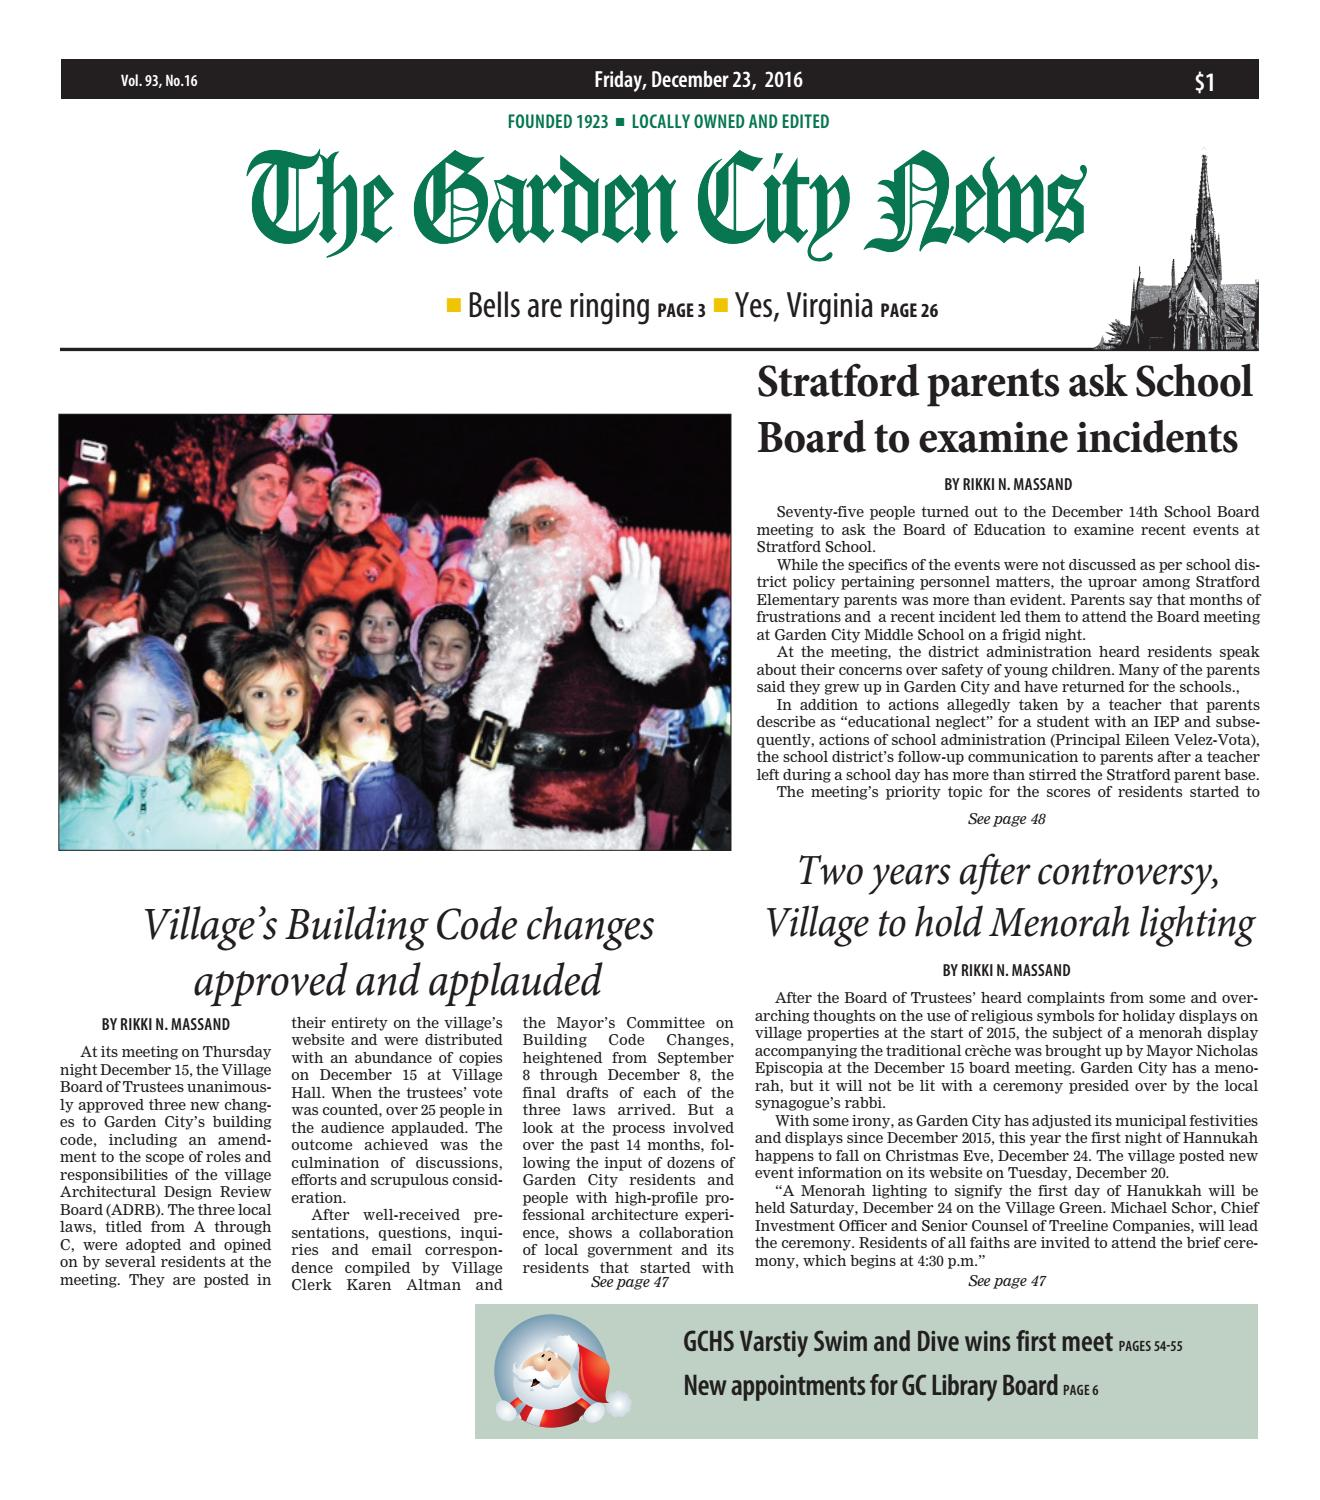 bb434b7147 The Garden City News by Litmor Publishing - issuu